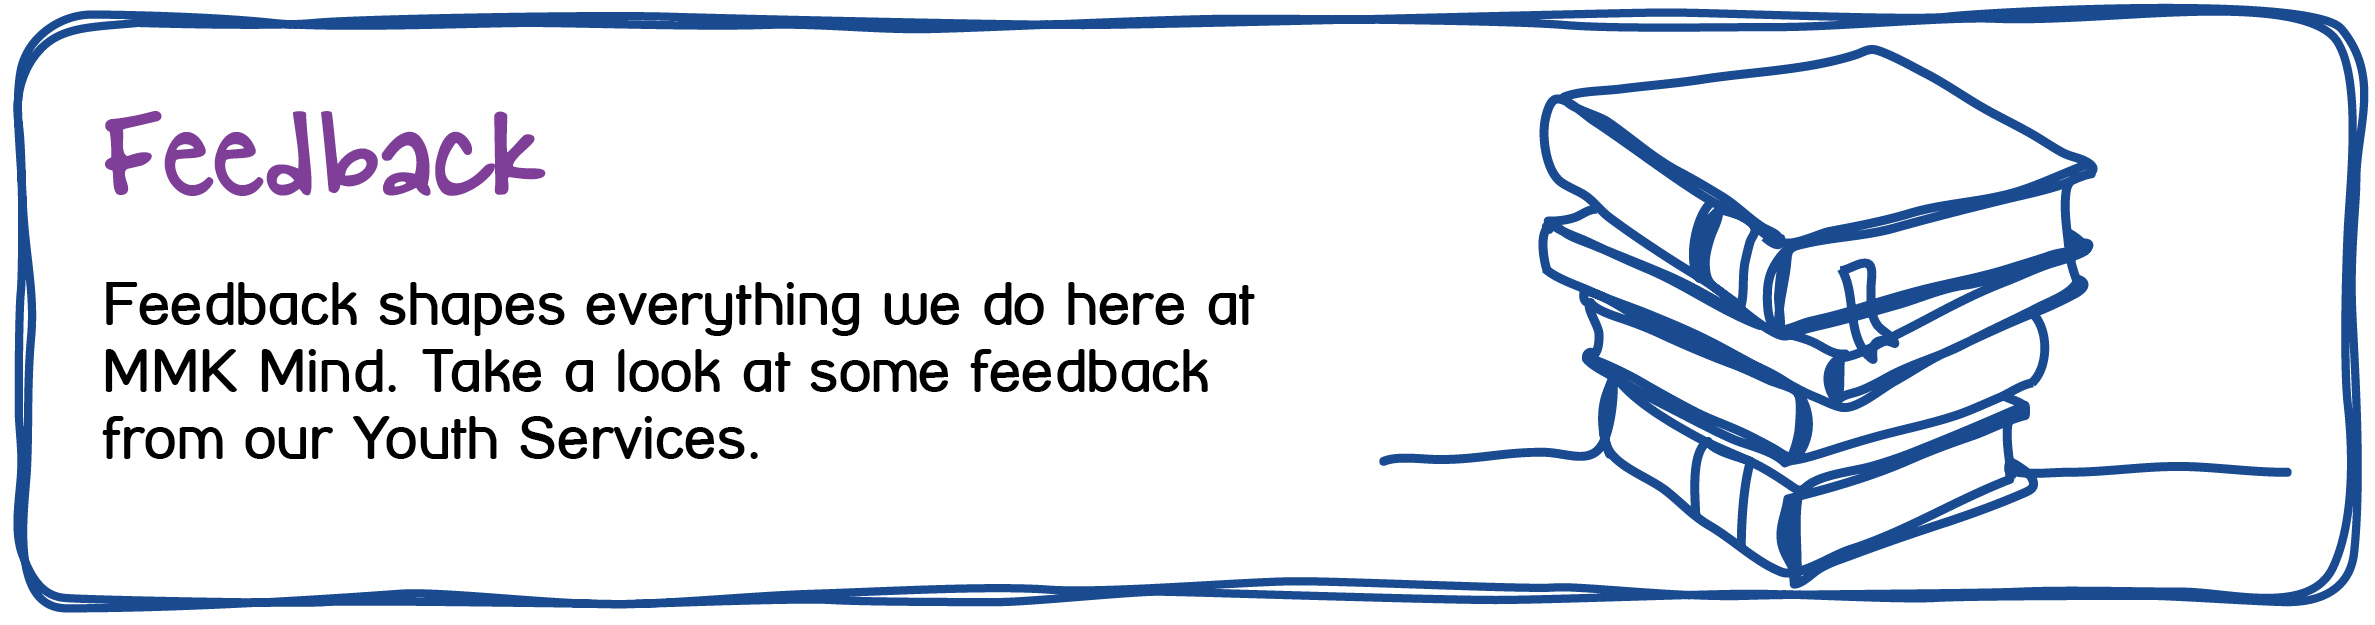 MMK Mind - Youth Services - Feedback